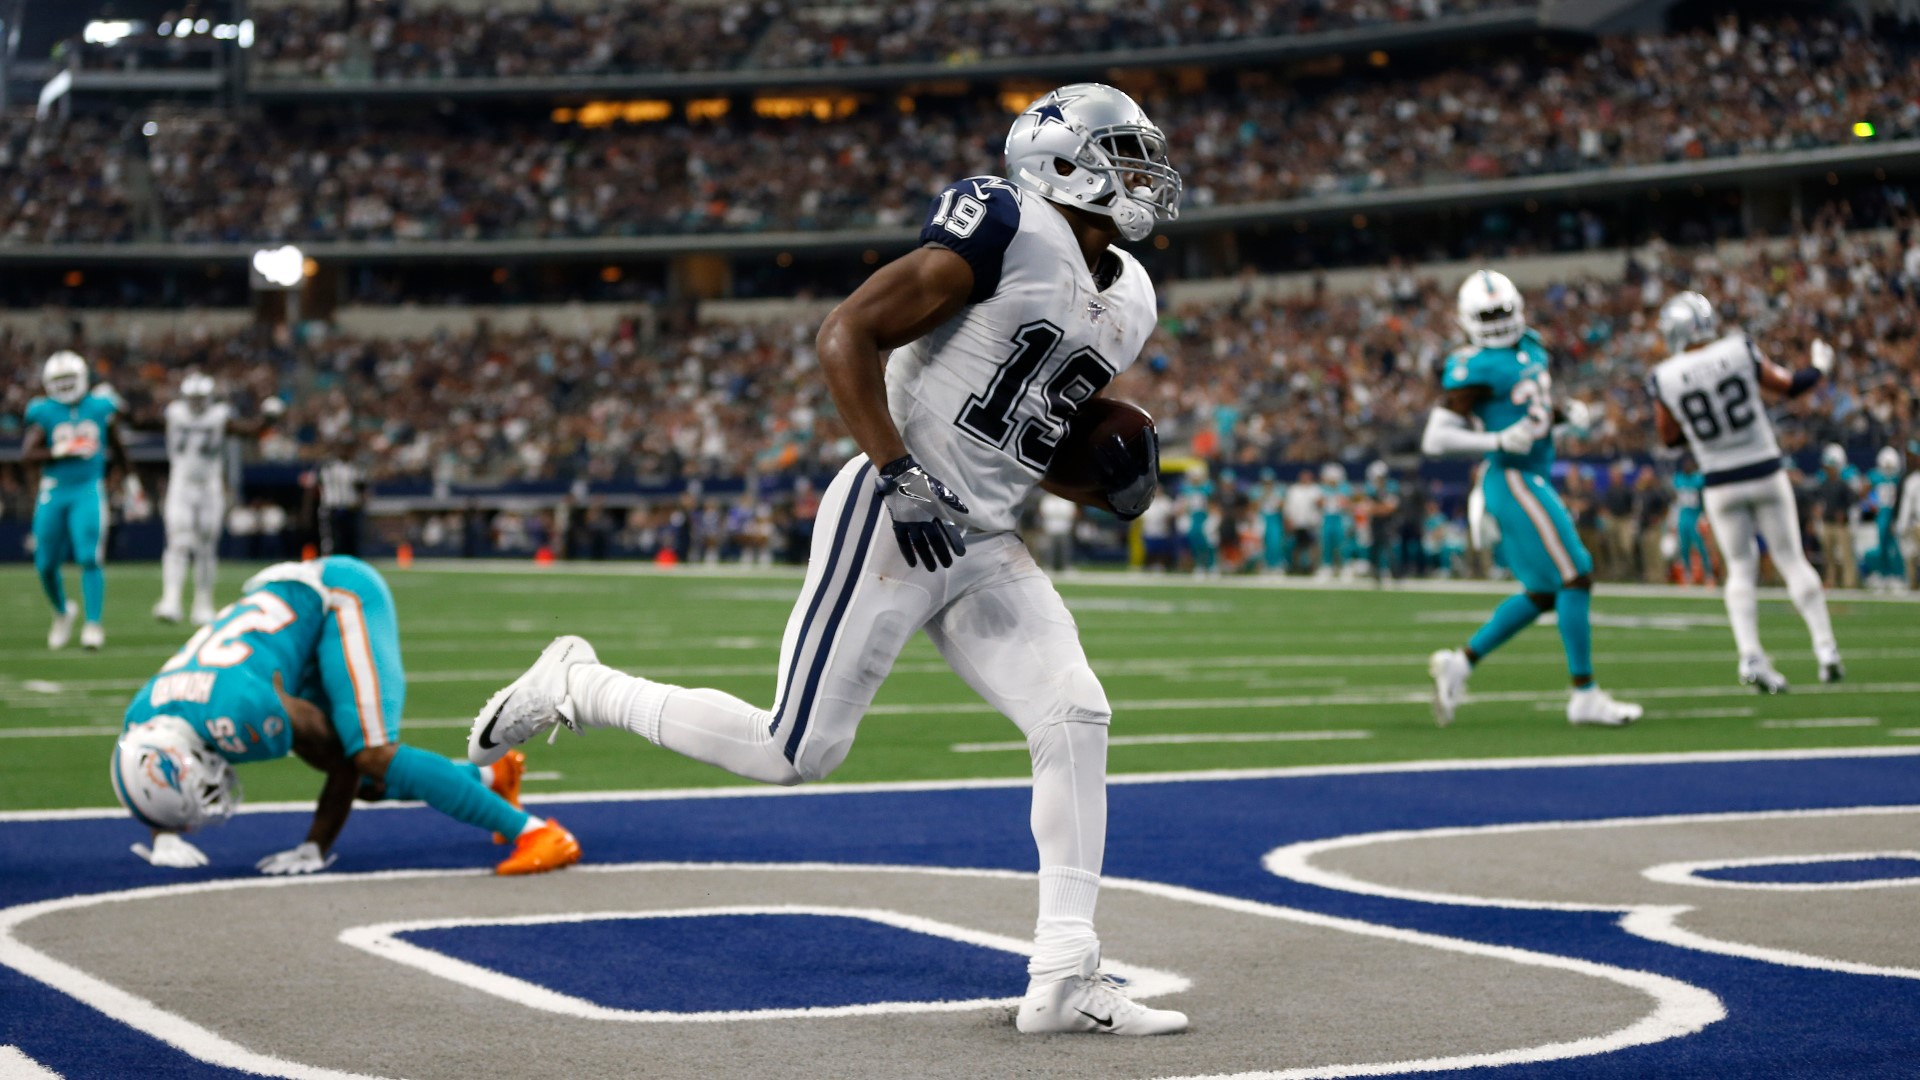 Cooper doesn't hide what he's thinking with Cowboys rolling